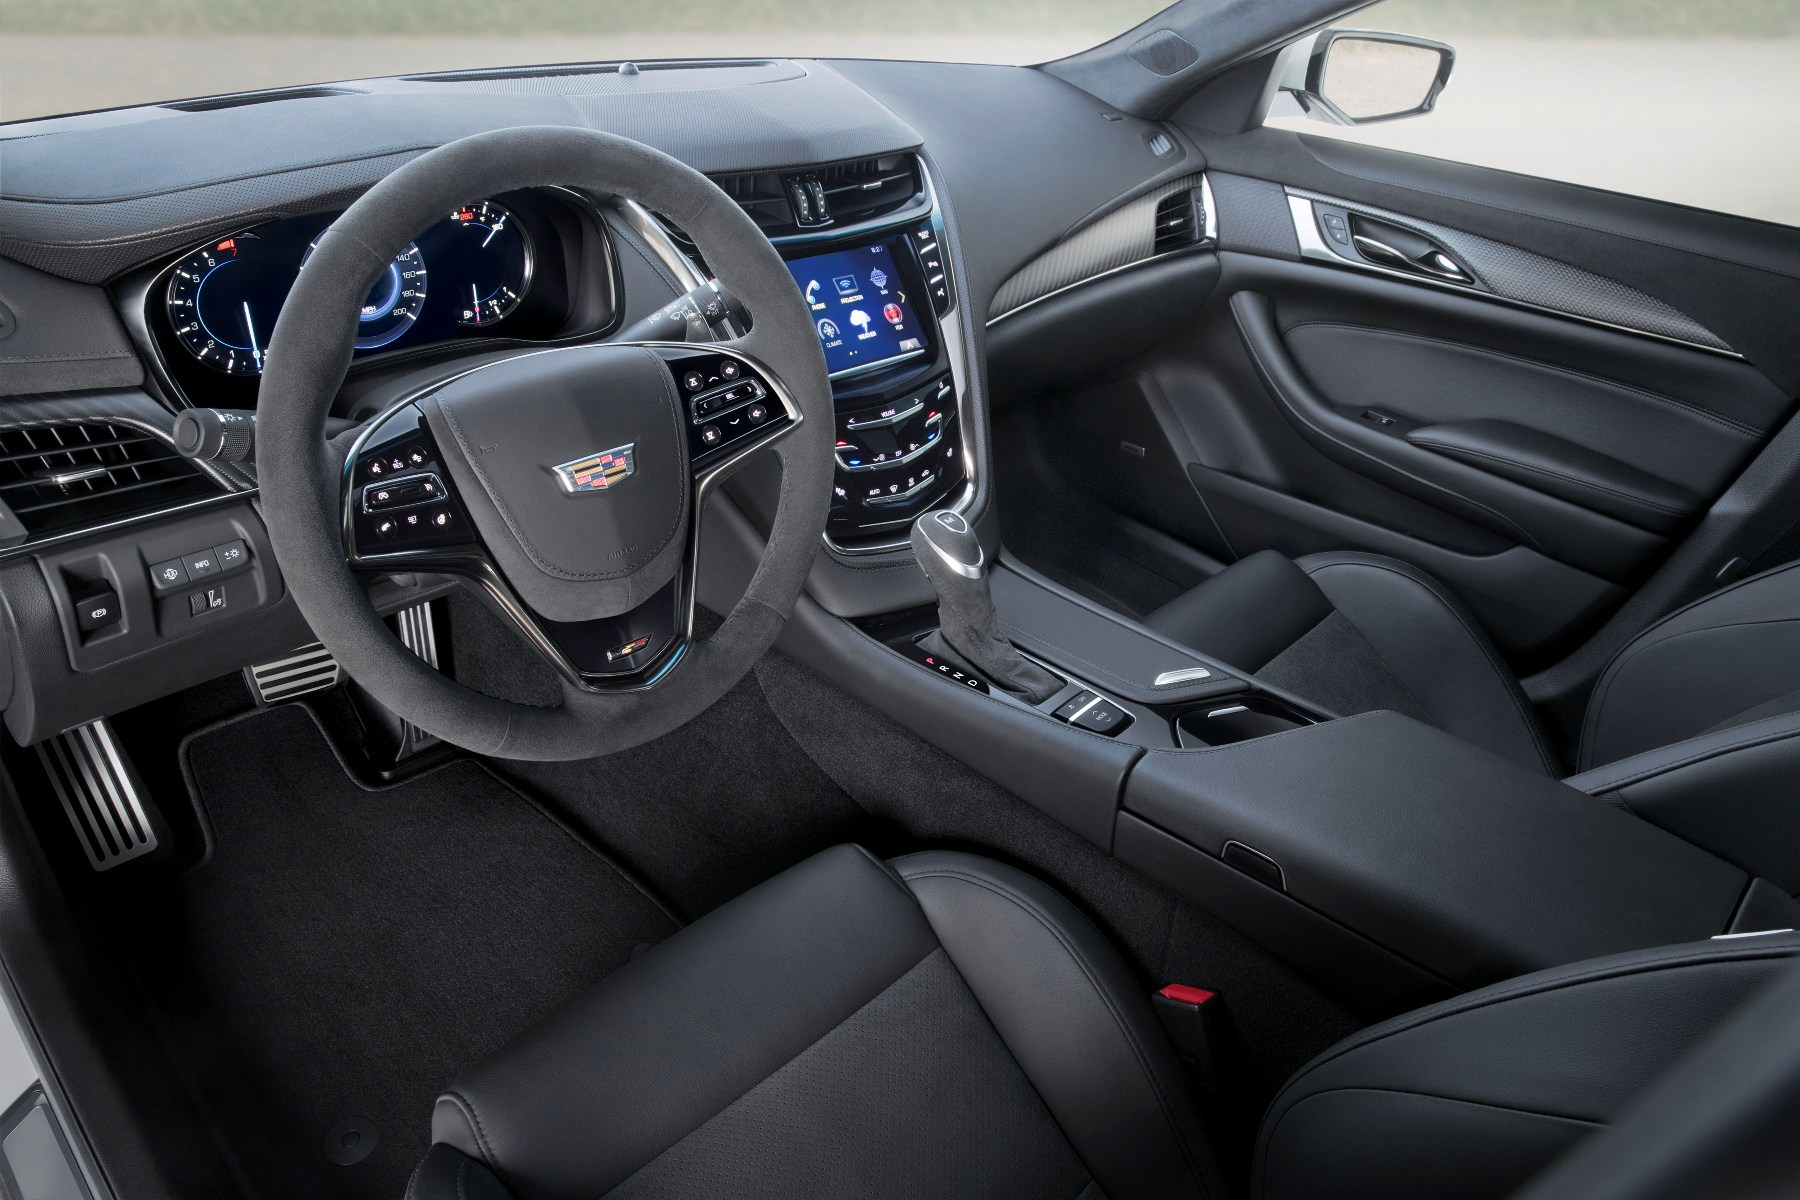 2018 Cadillac CTS-V Overview - The News Wheel